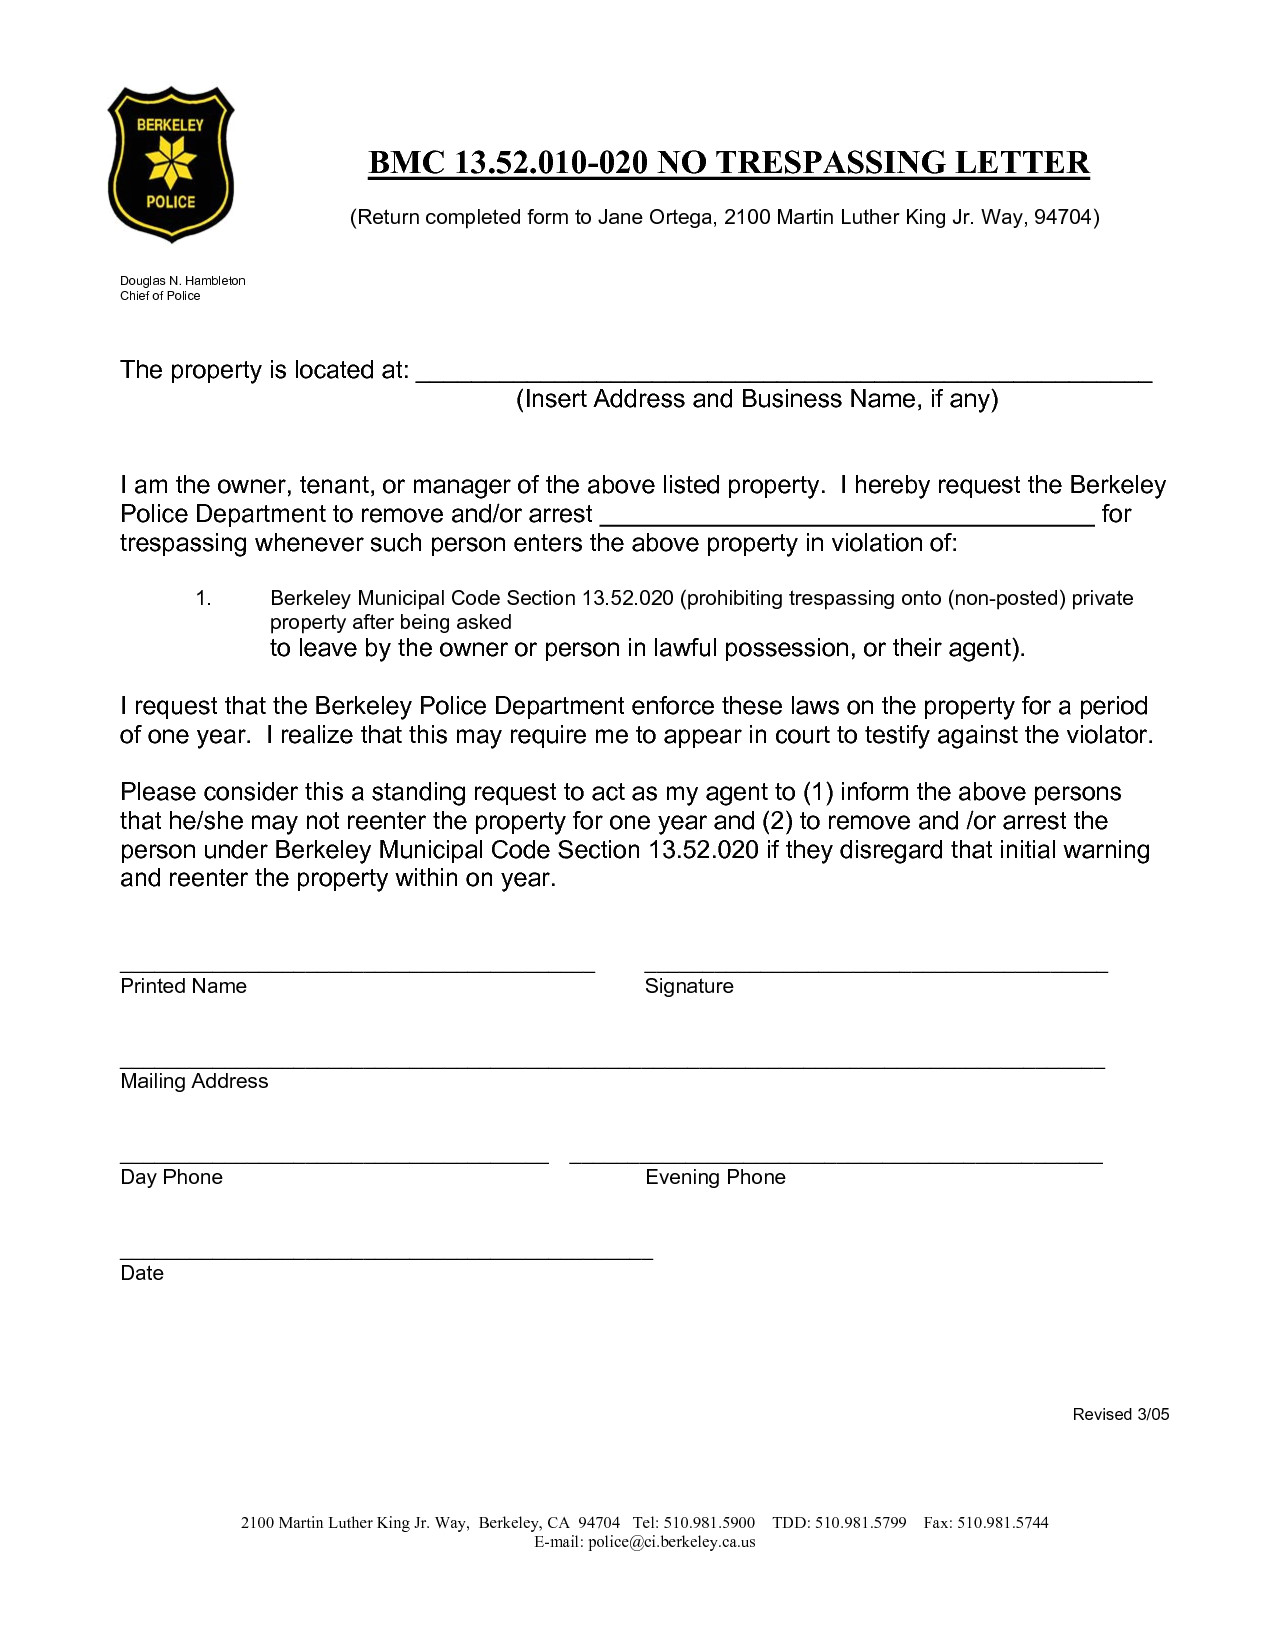 Trespass Notice Template 10 Best Images Of No Trespassing Notice Letter No